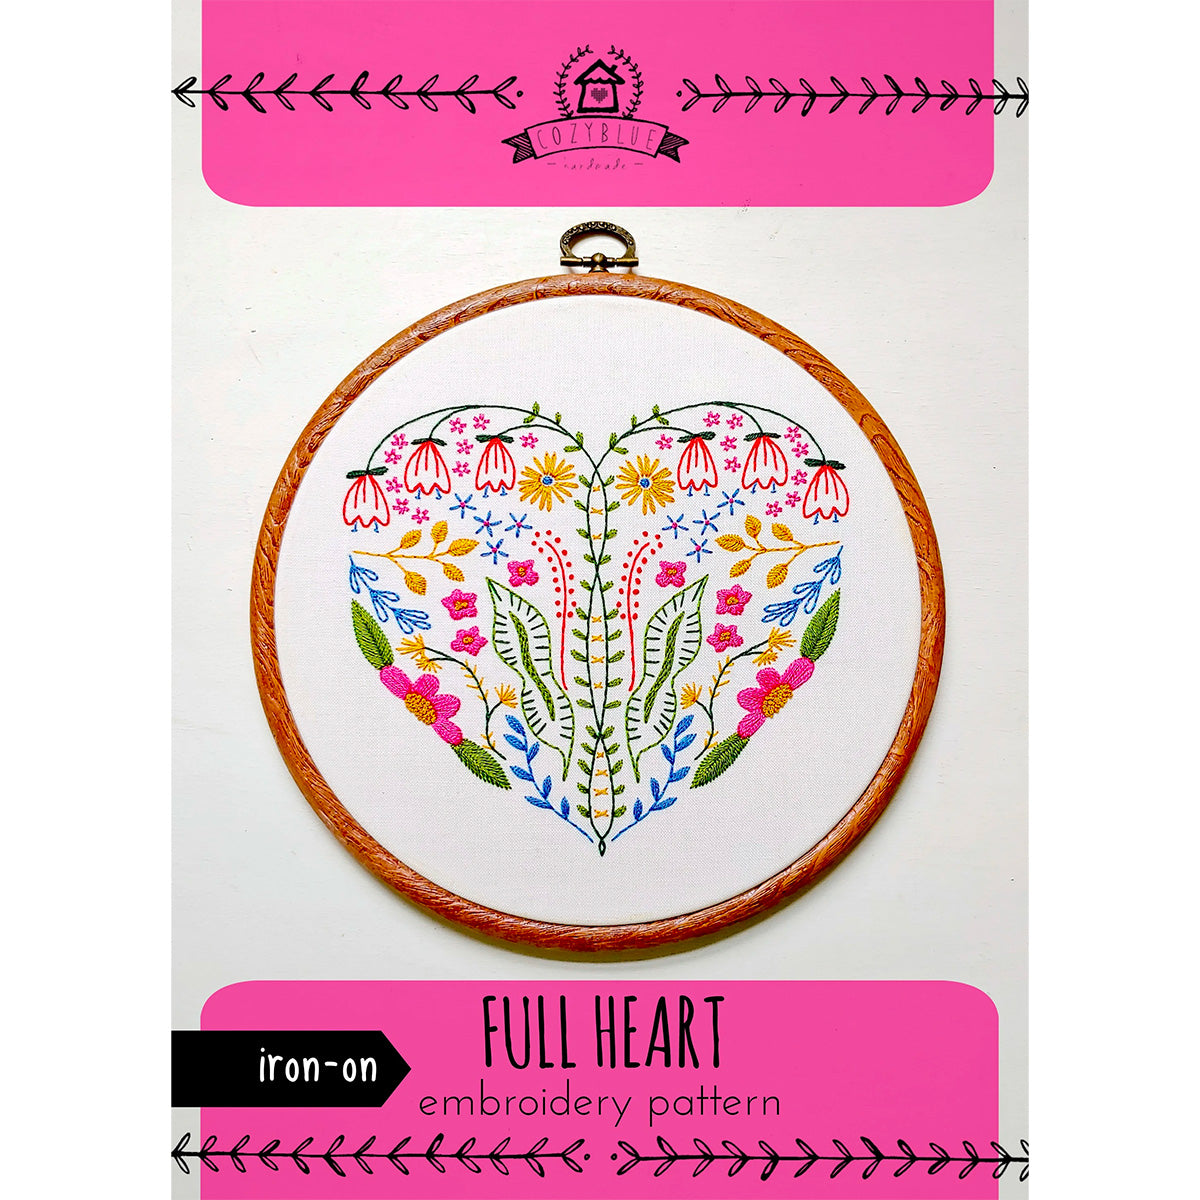 Full Heart Hand Embroidery Iron-on Pattern